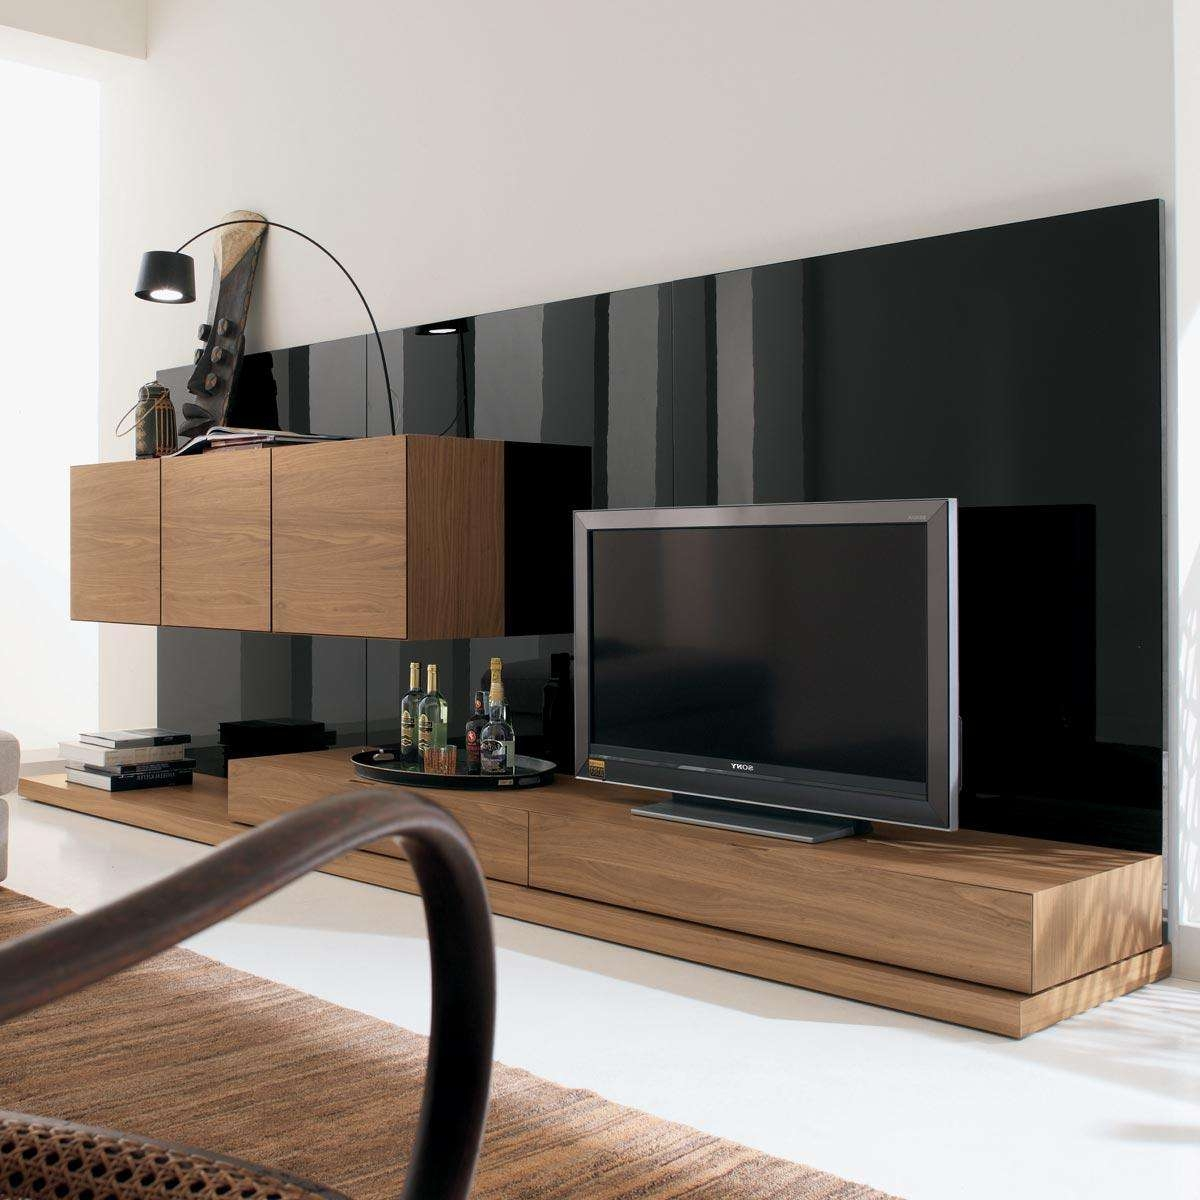 Modern Nature Wood Big Screen Tv Stand Wall Mounted Living Room Inside Modern Tv Stands With Mount (View 10 of 15)